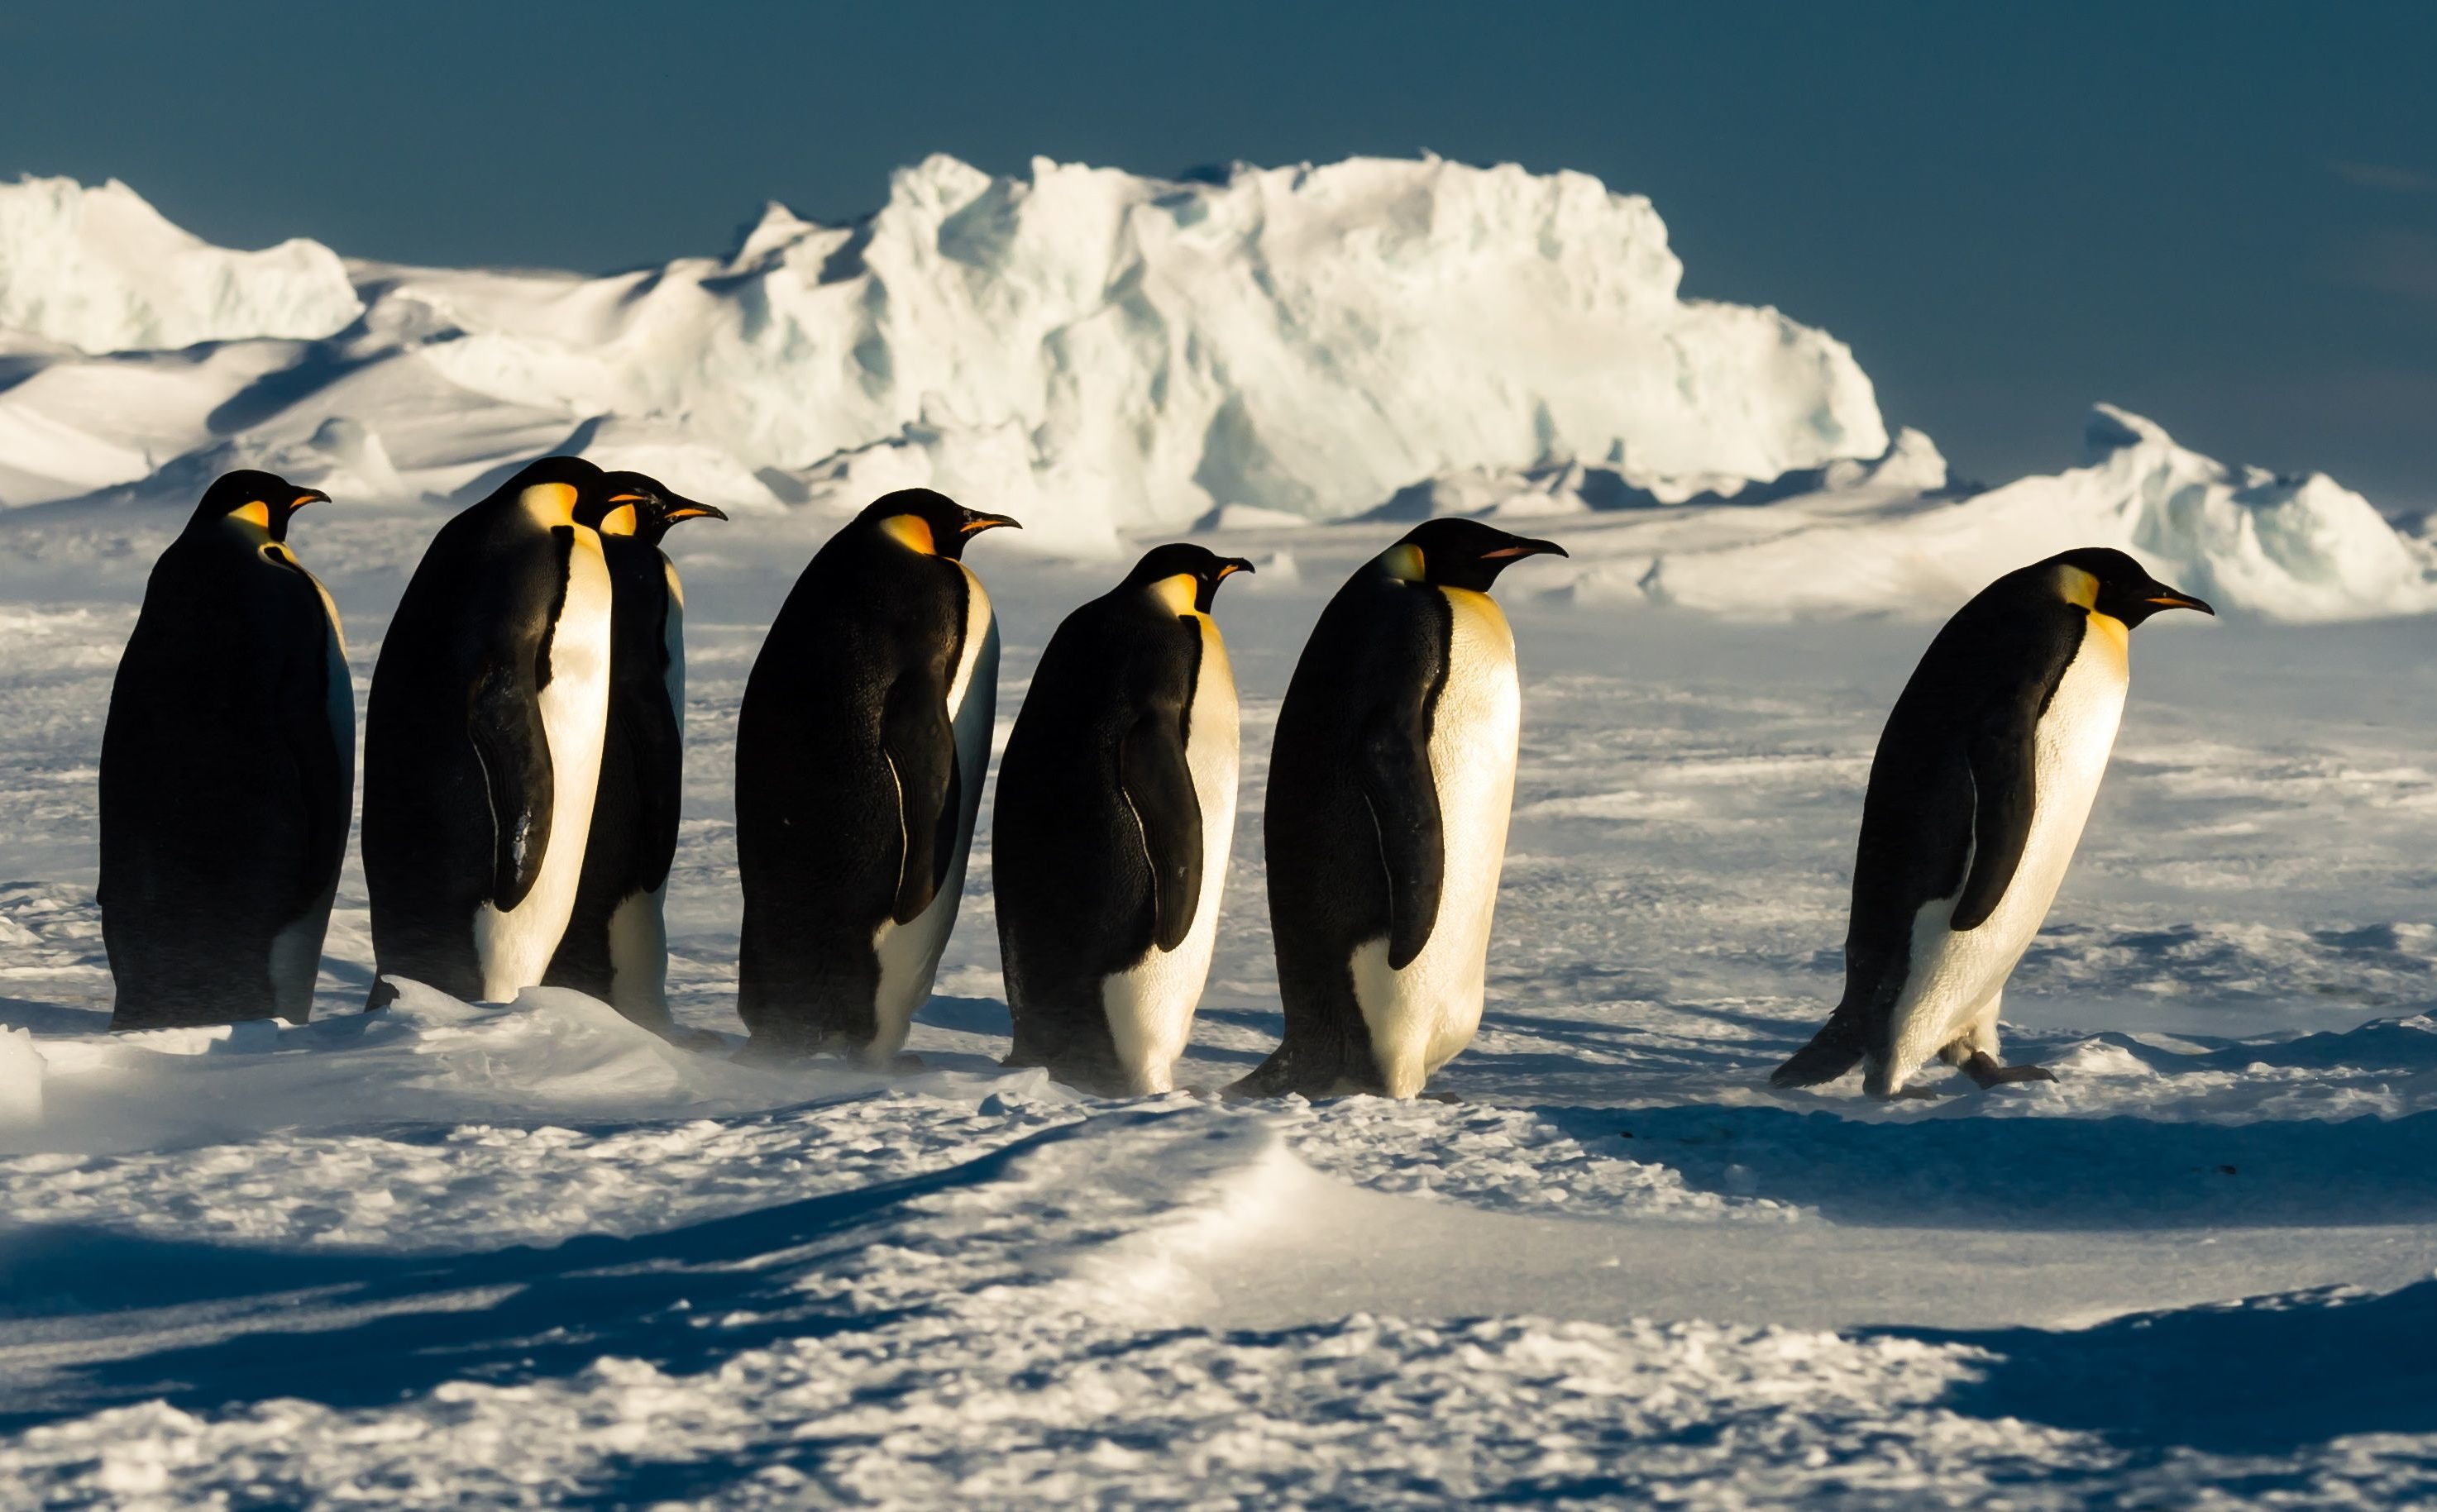 Mandatory Credit: Photo by Riehle Gunther/Solent News/Shutterstock (5540026i) A line of adult penguins Emperor penguins in Antarctica - Dec 2015 *Full story: http://www.rexfeatures.com/nanolink/rtnf A group of penguin chicks huddle together for warmth during a heavy snowstorm. The fluffy grey chicks were part of a colony of around 300 Emperor Penguins and came together to keep warm in the below freezing temperatures. Emperor Penguin parents take it in turns to look after their chick with both mother and father feeding and caring for their young. Heavy snowstorms, where temperatures are around -9 degrees Celsius, are a common occurrence in Antarctica. To avoid the strong, cold winds from the snowstorm Emperor Penguins will sometimes lie on their stomachs facing against the wind to lessen wind exposure. Food technology engineer Gunther Riehle spent seven nights in Antarctica when the snowstorms were so severe he was unable to fly out earlier.